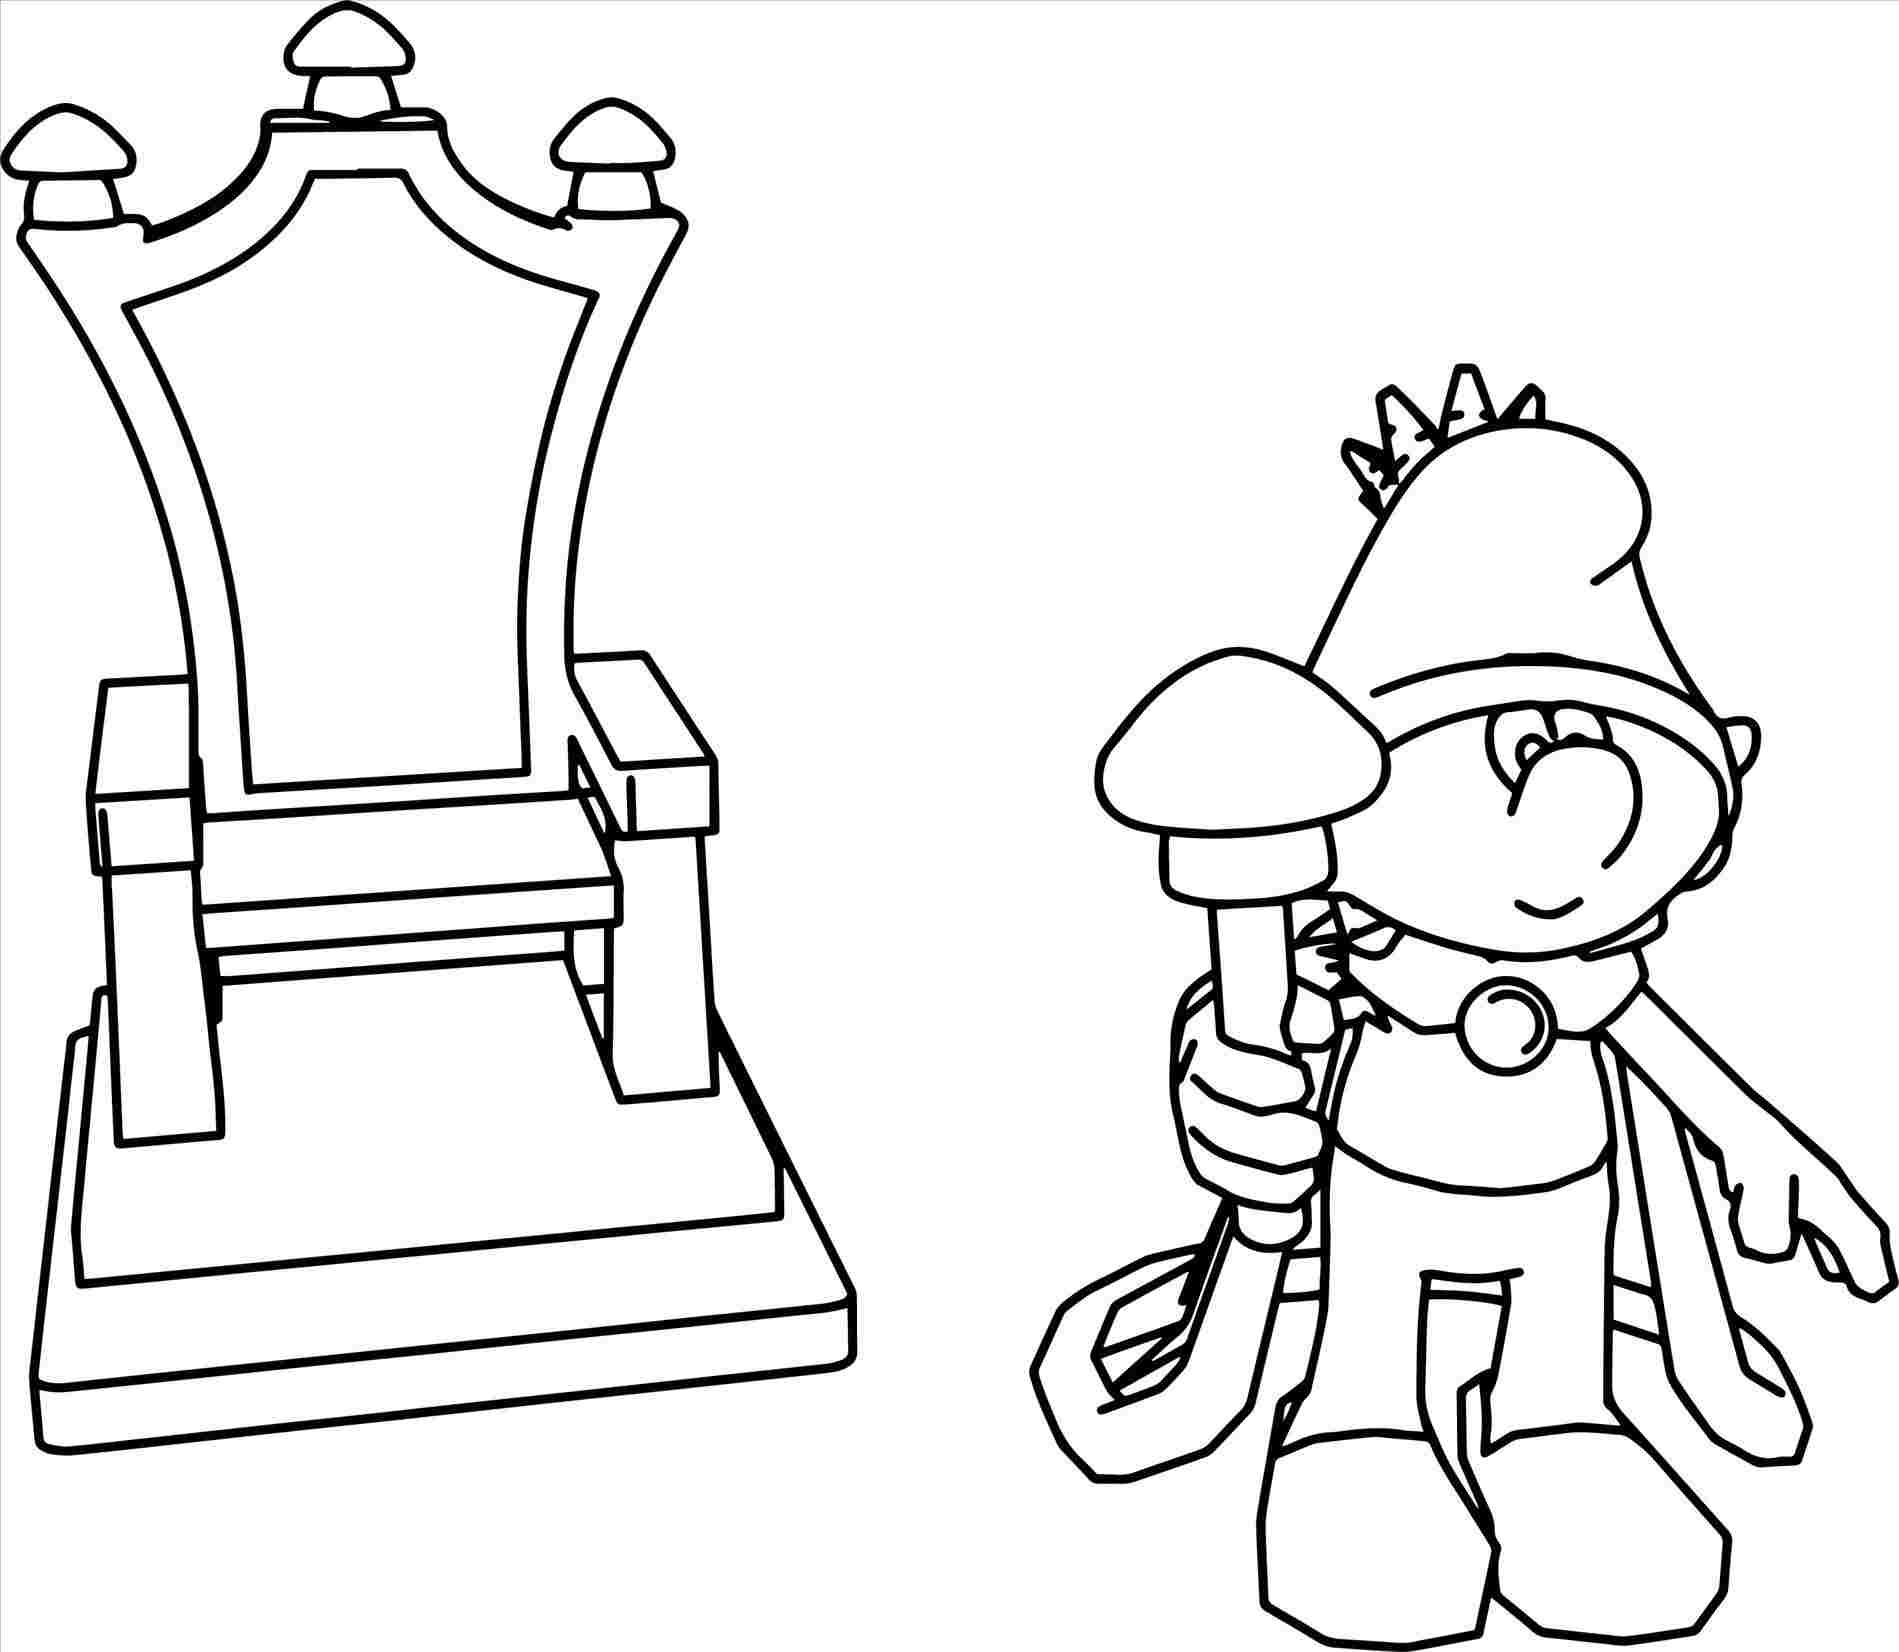 King on throne clipart black and white png freeuse King On Throne Drawing at PaintingValley.com | Explore collection of ... png freeuse